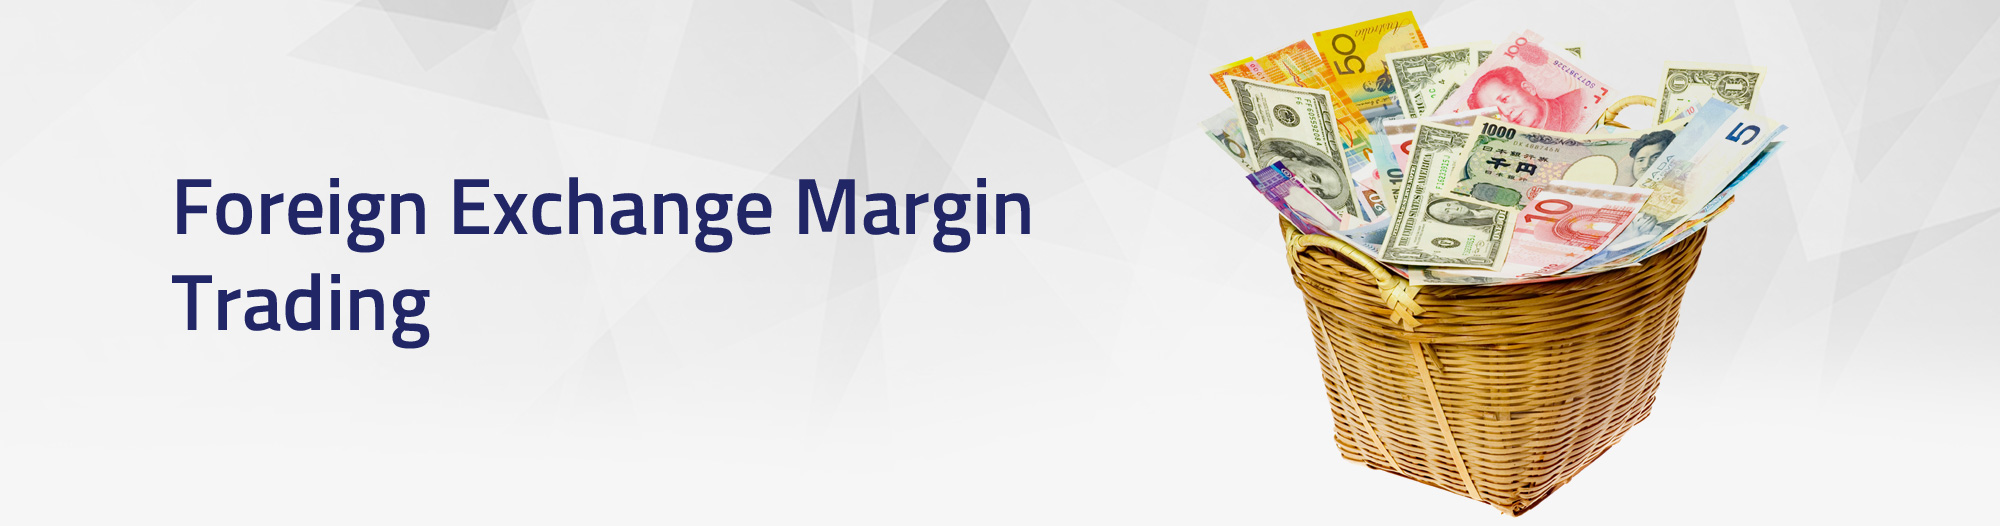 Foreign Exchange Margin Trading